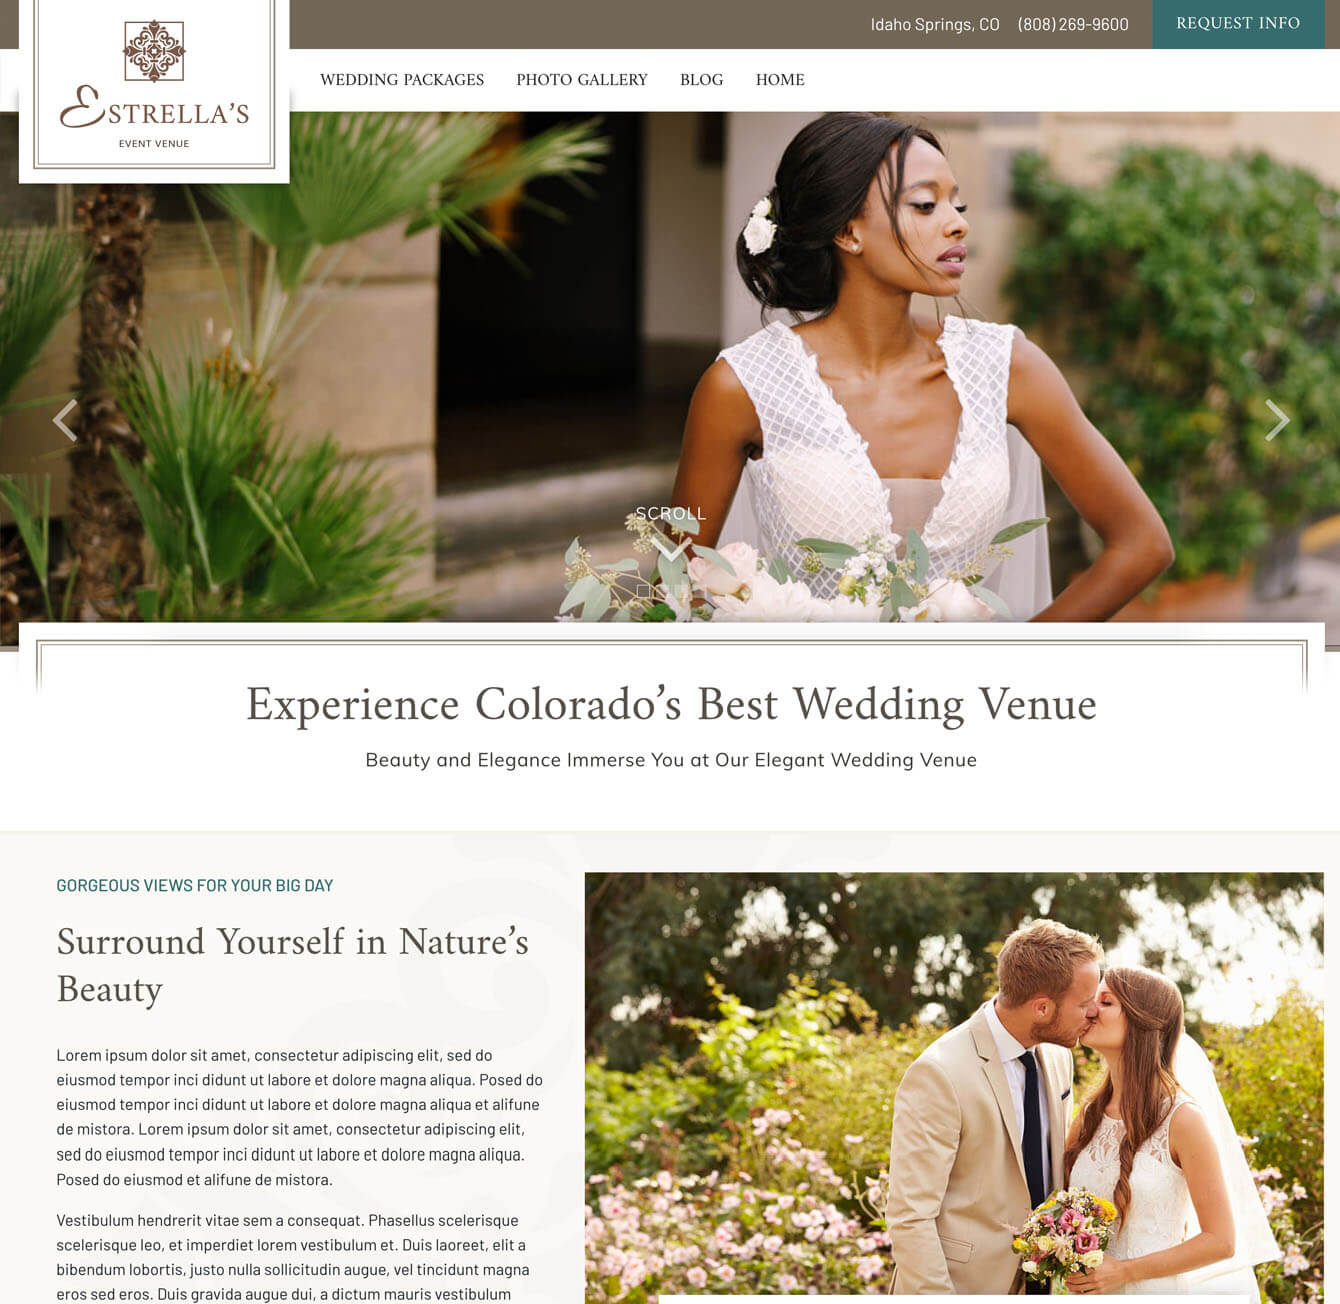 Classic wedding venue website design